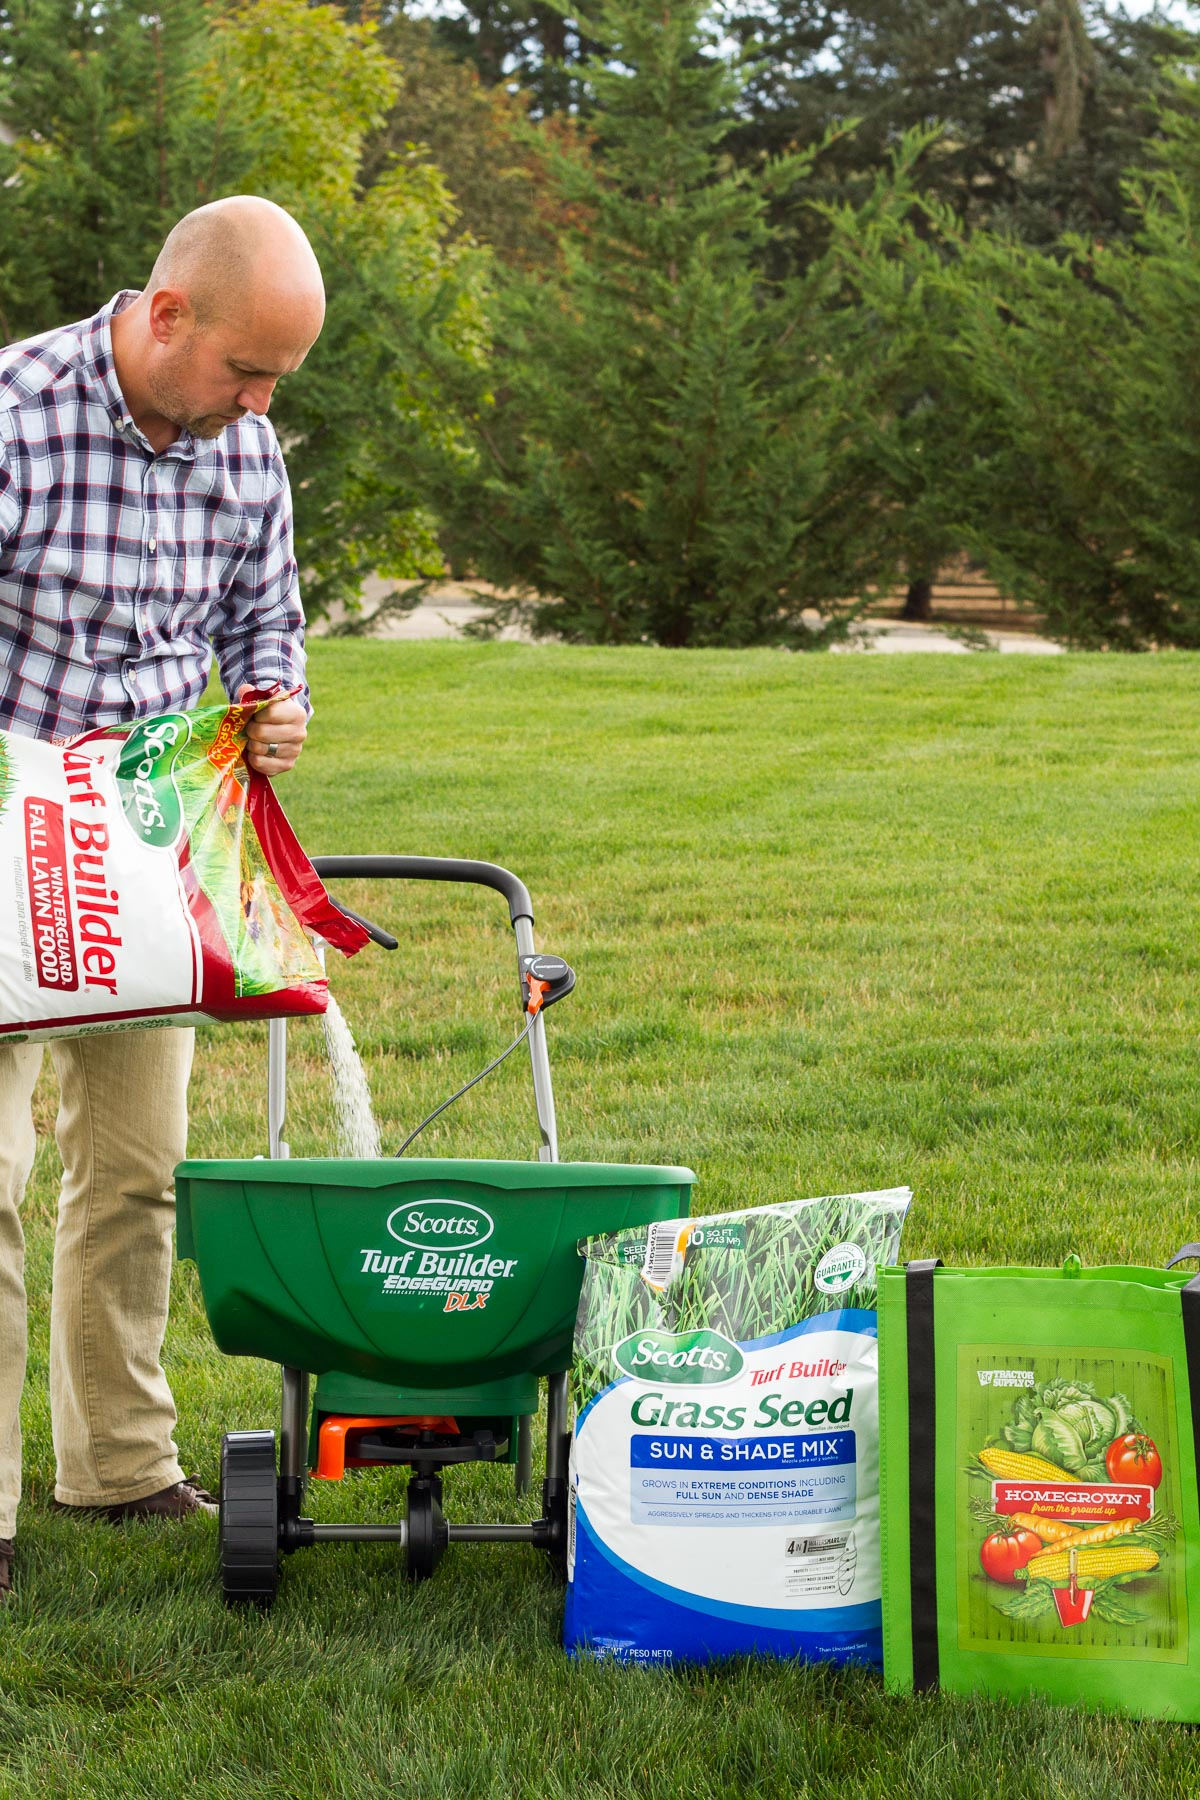 11 fall chores that will make your lawn, yard, and garden happy and healthy next spring!